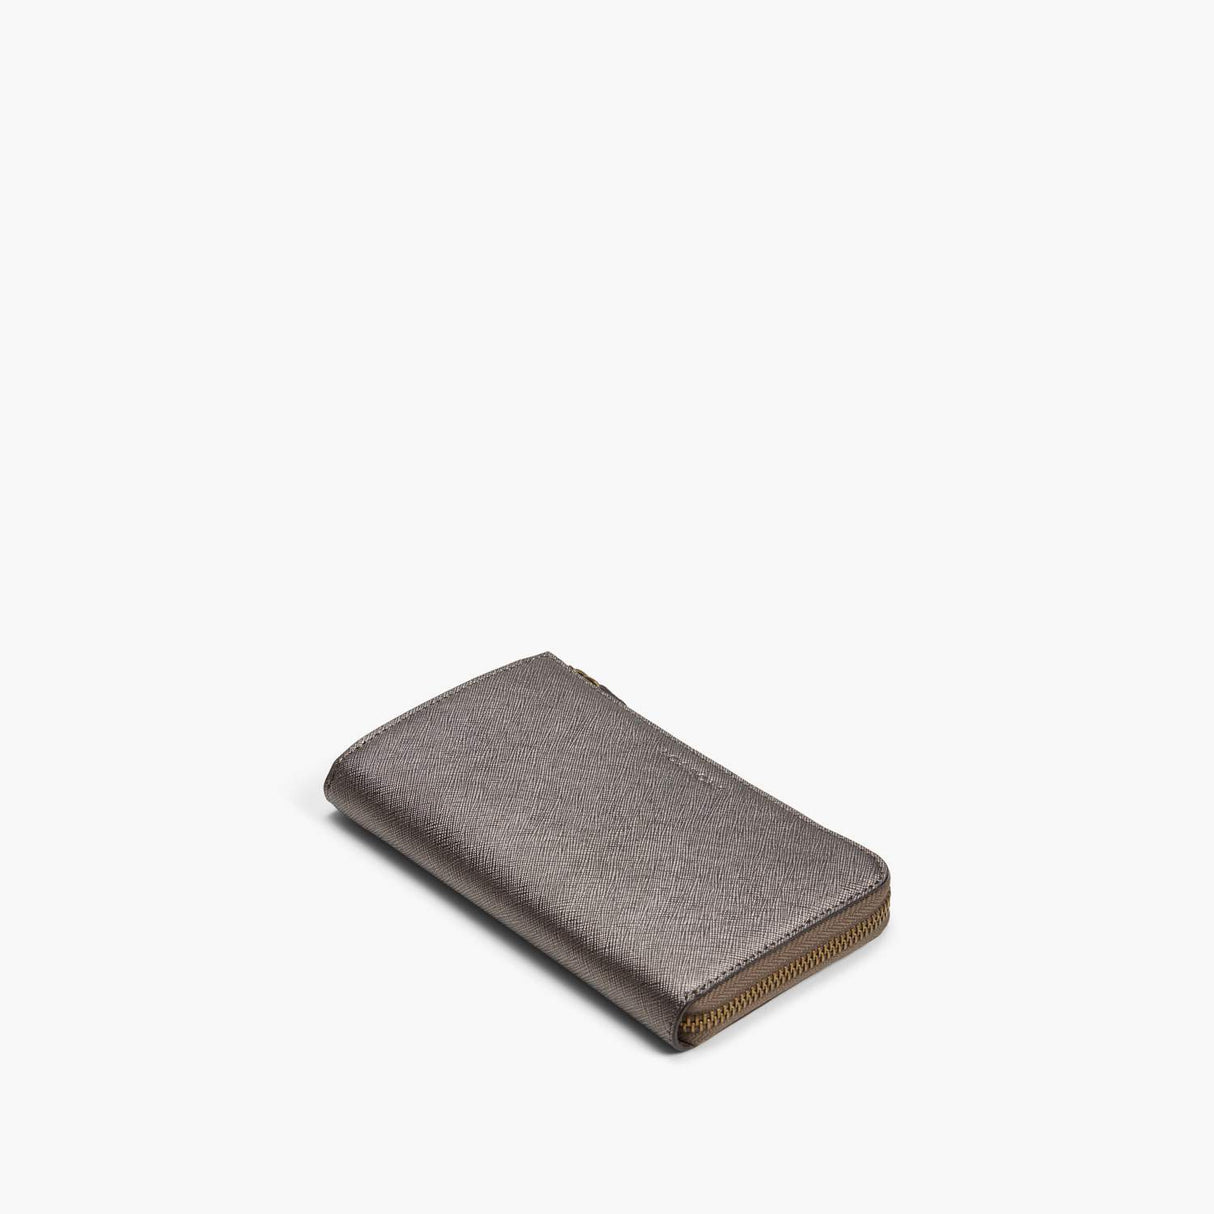 Front - Leather Wallet - Saffiano Leather - Graphite / Brass / Grey - Small Accessory - Lo & Sons